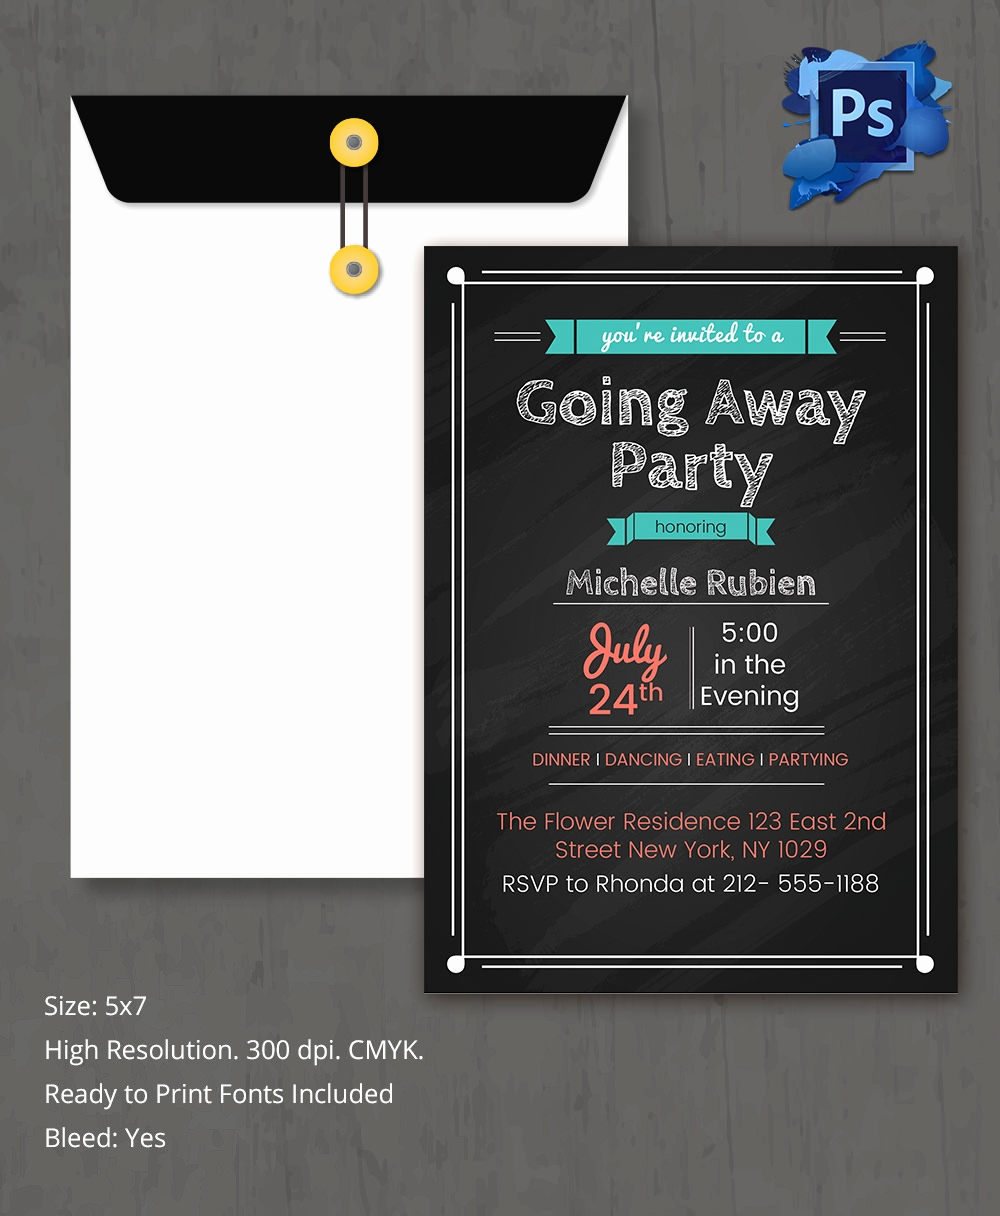 Going Away Party Invitation Template Best Of Farewell Party Invitation Template 26 Free Psd format